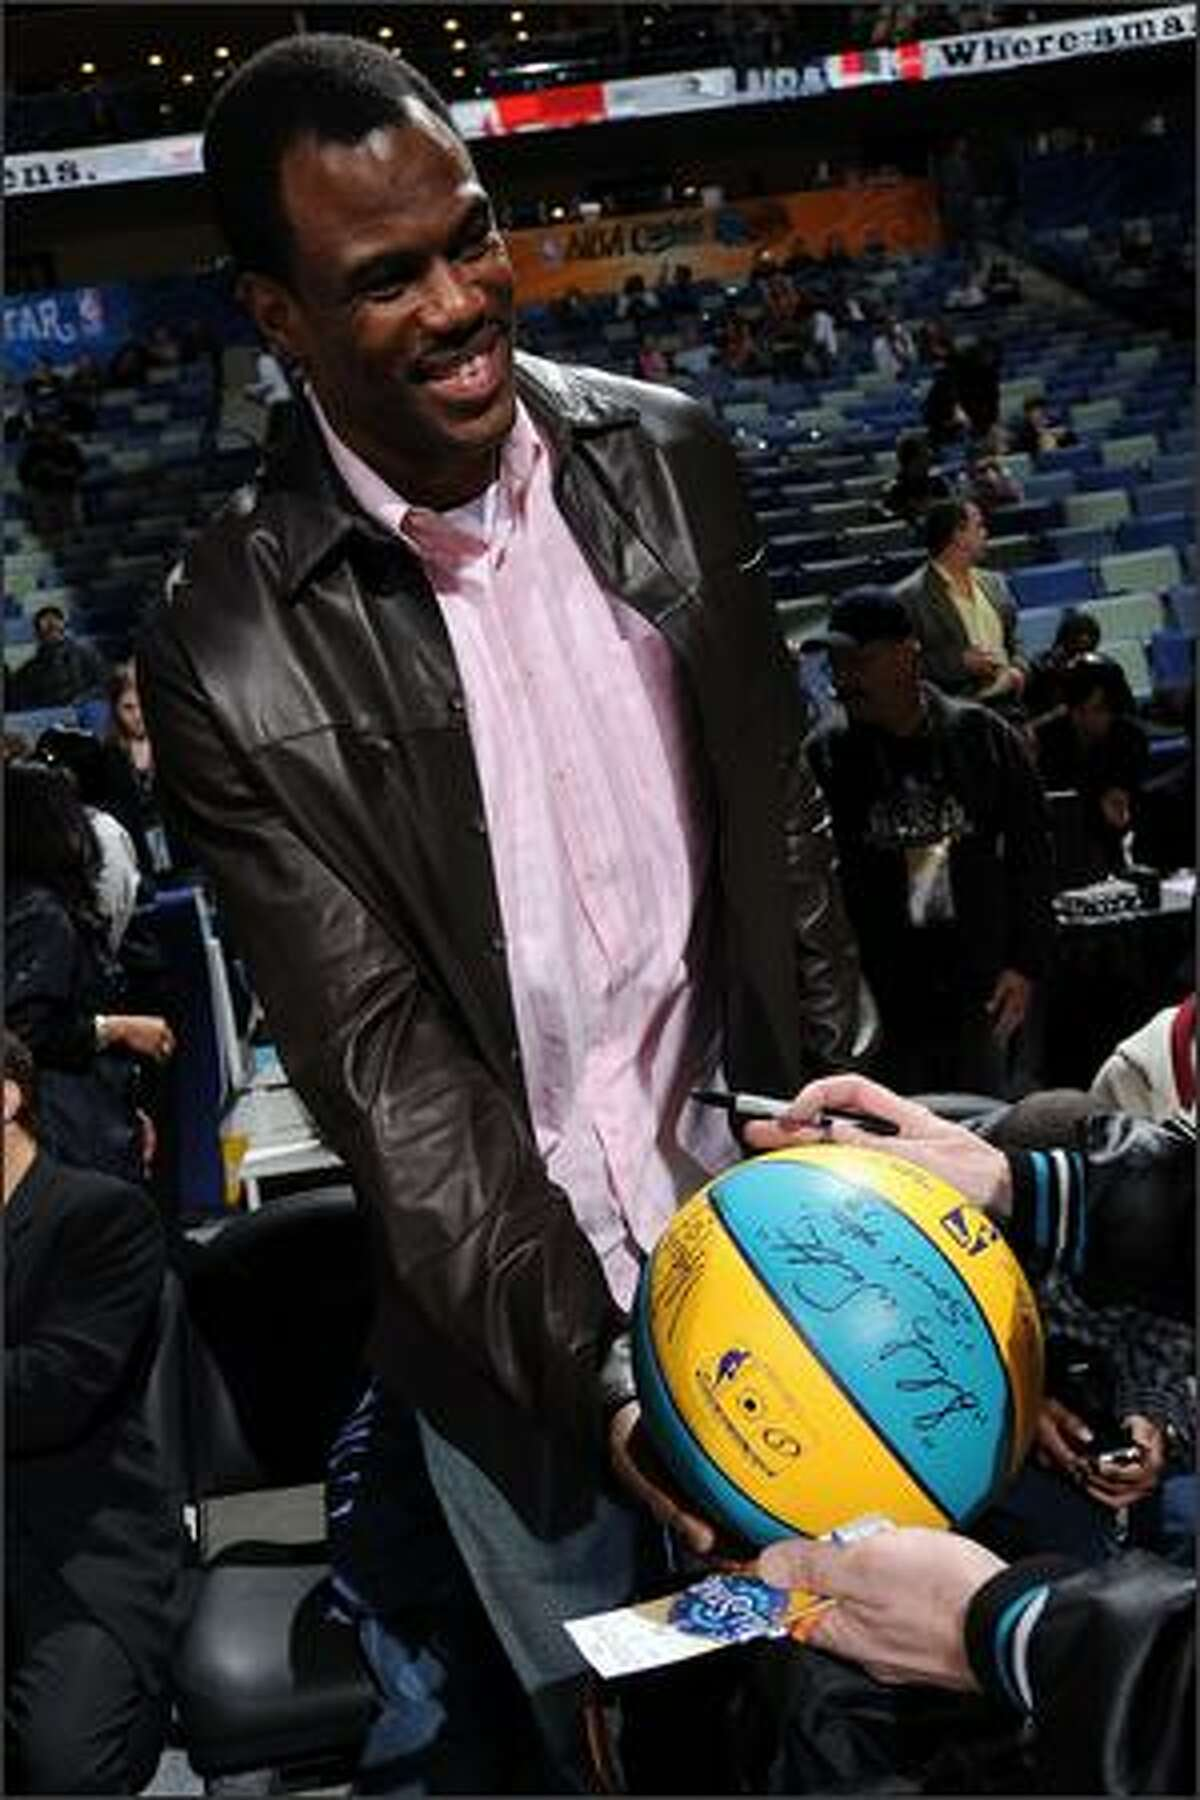 NBA legend David Robinson signs an autograph prior to the start of the 2008 NBA All-Star Game in New Orleans.